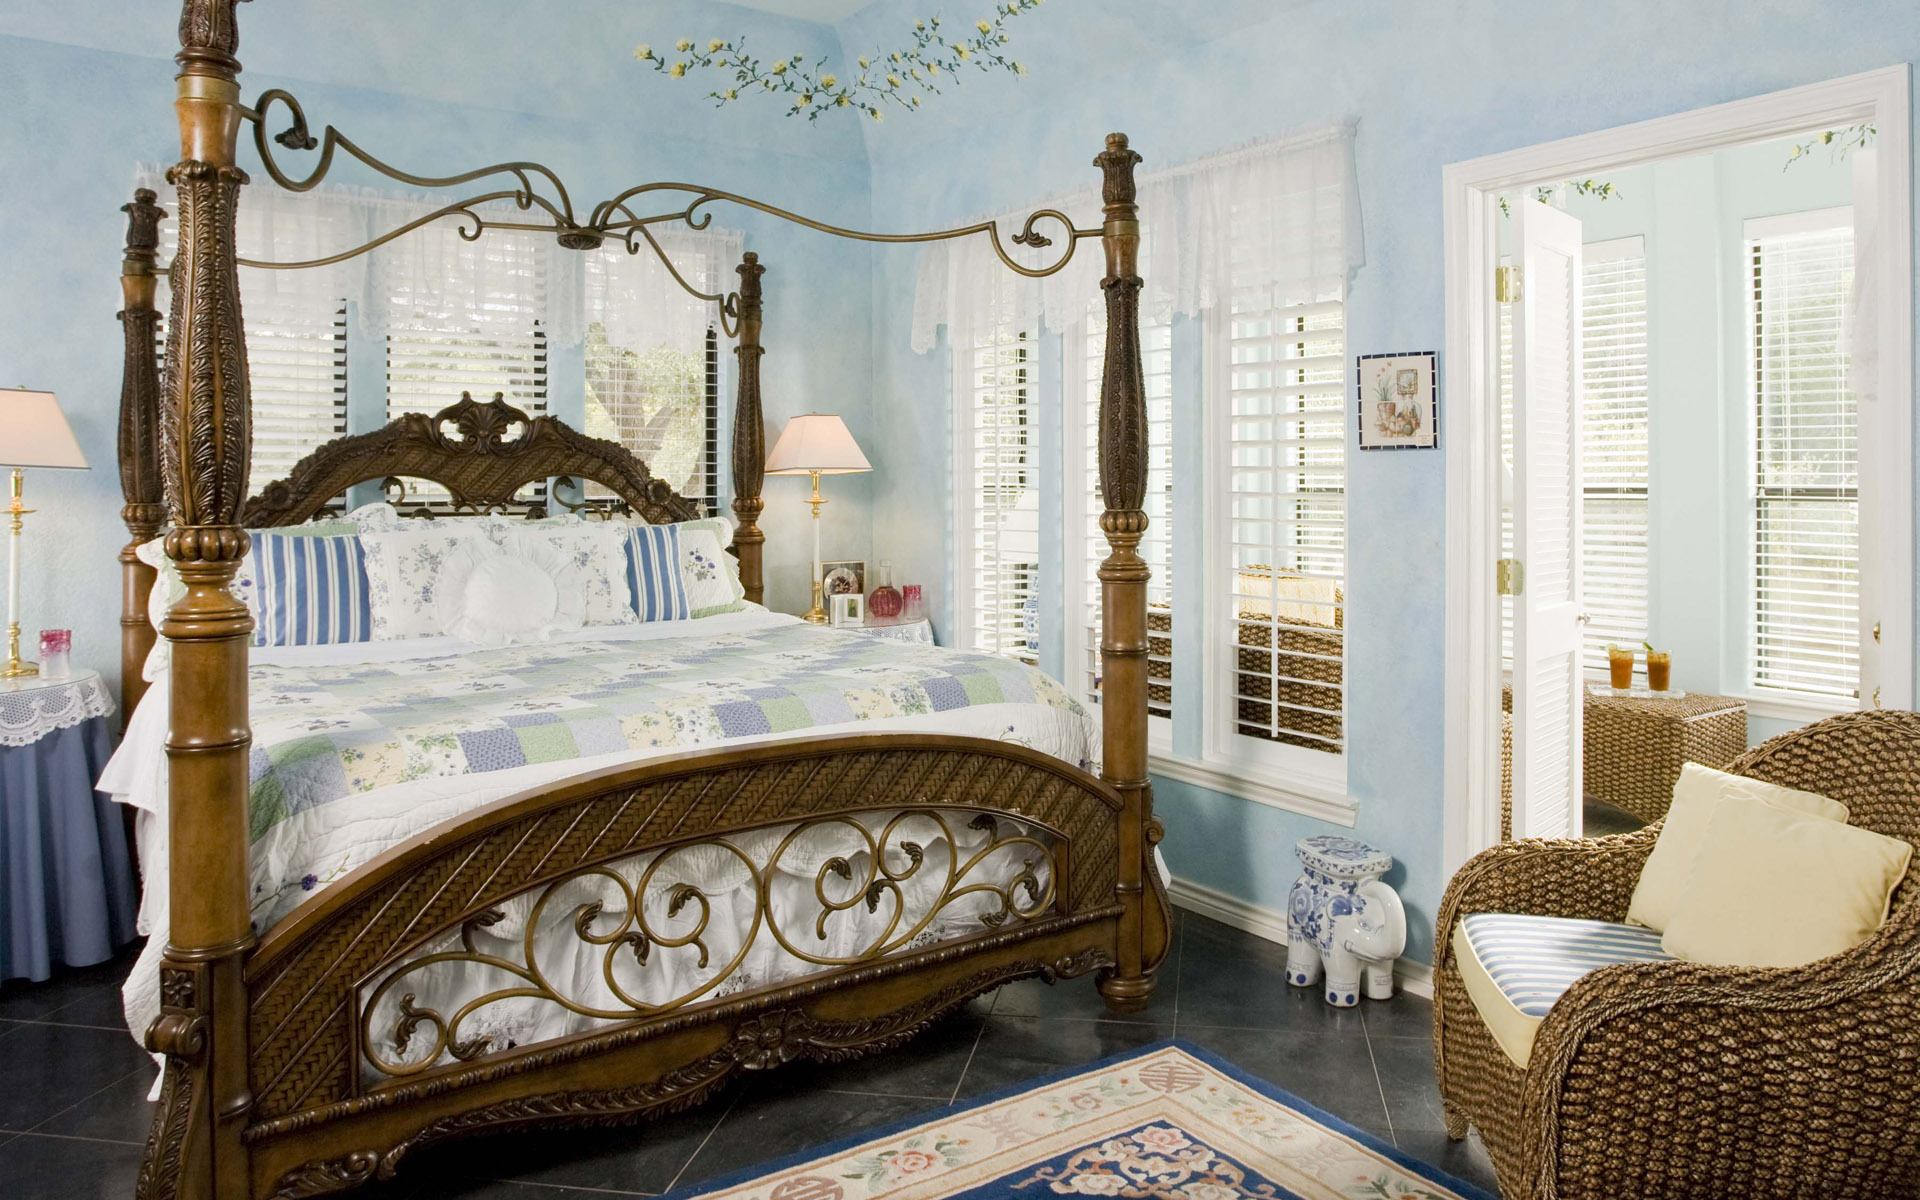 Large king-size canopy bed in Classic bedroom